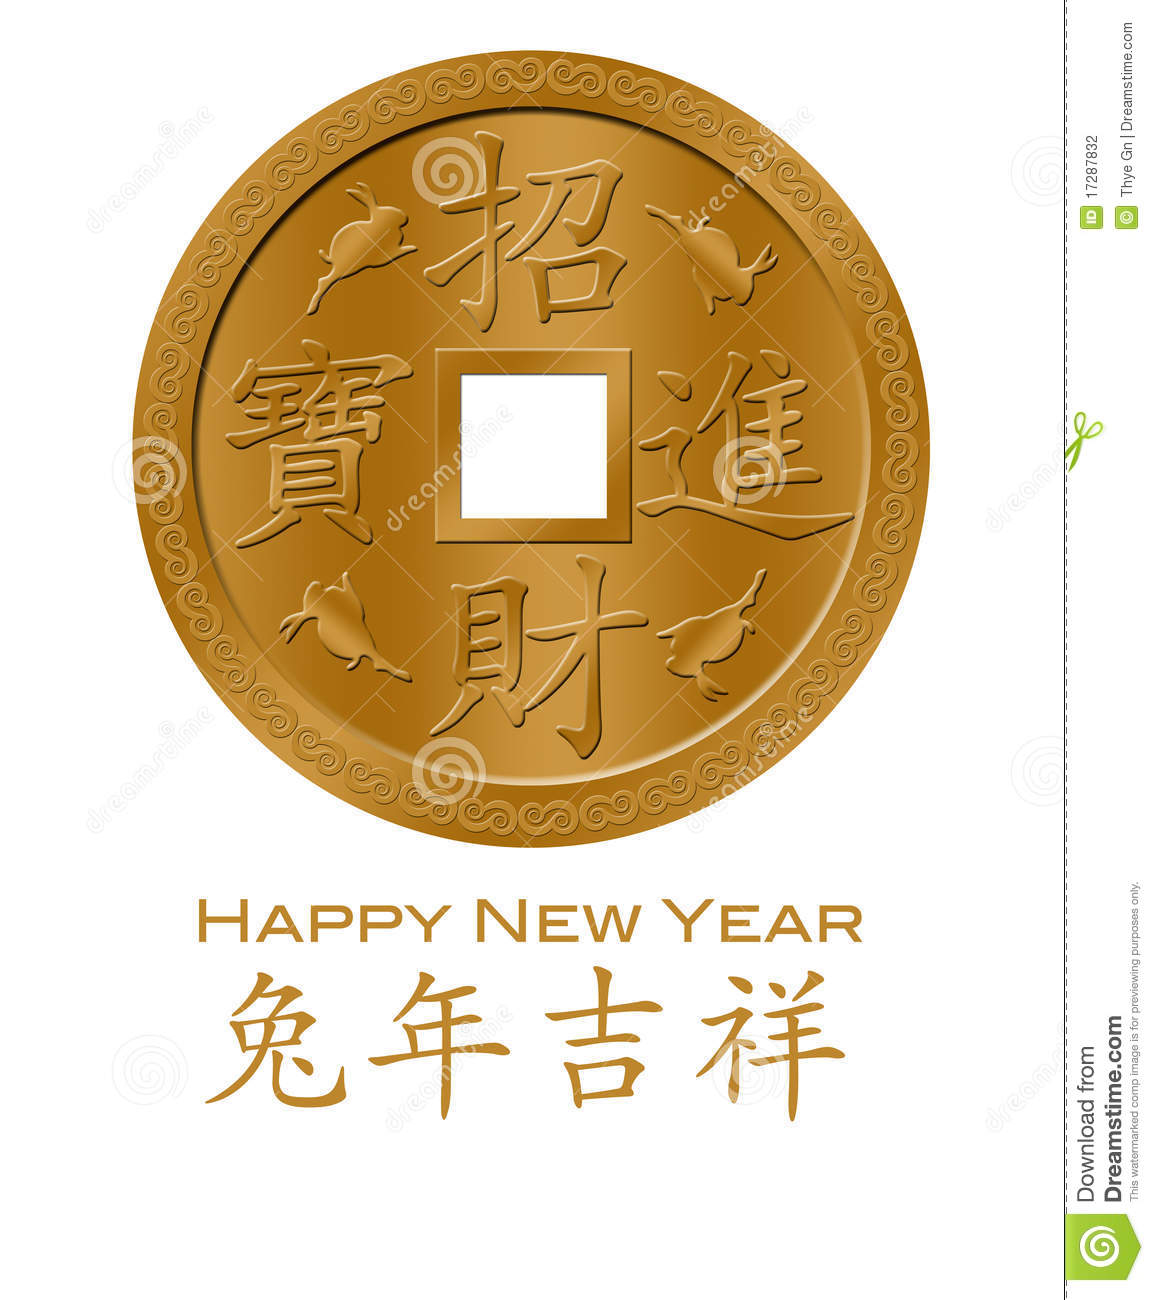 New Year Of The Rabbit 2011 Chinese Gold Coin Stock Photography.